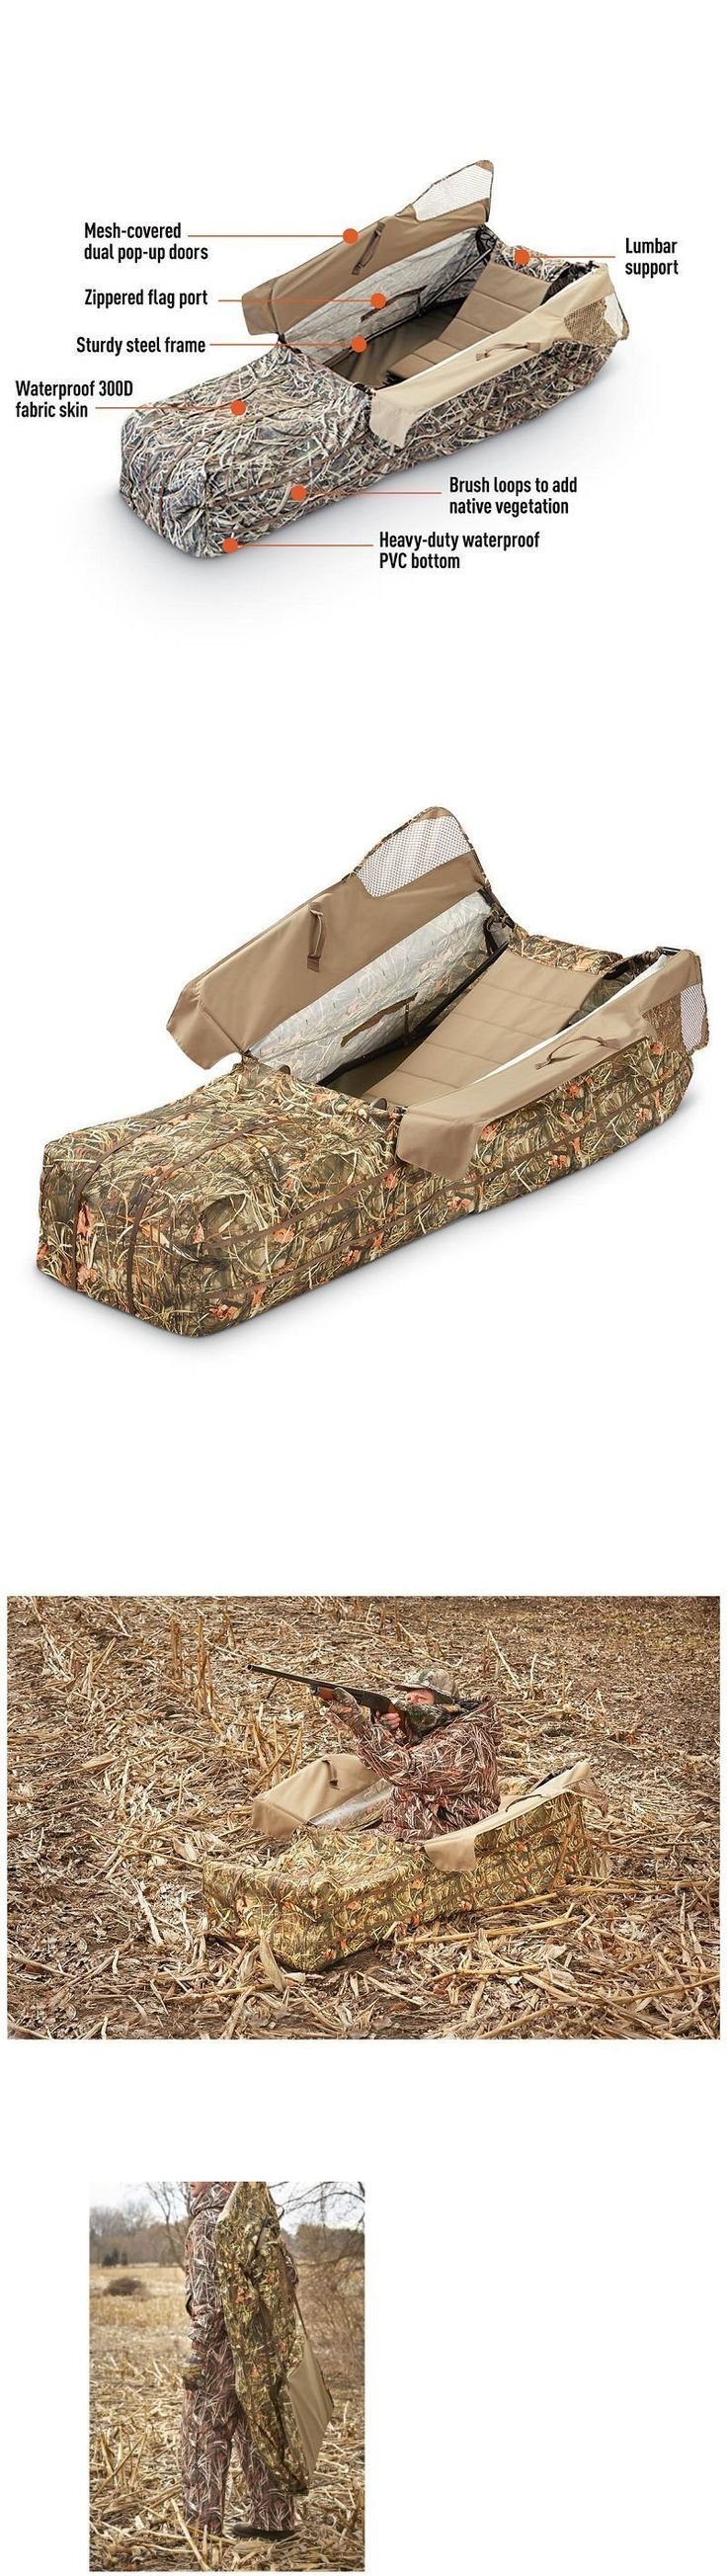 Blinds 177910: Mossy Oak Grass Blades Camo Duck Hunting Blind Hay Field Straw Wheat Geese Birds -> BUY IT NOW ONLY: $147.99 on eBay!